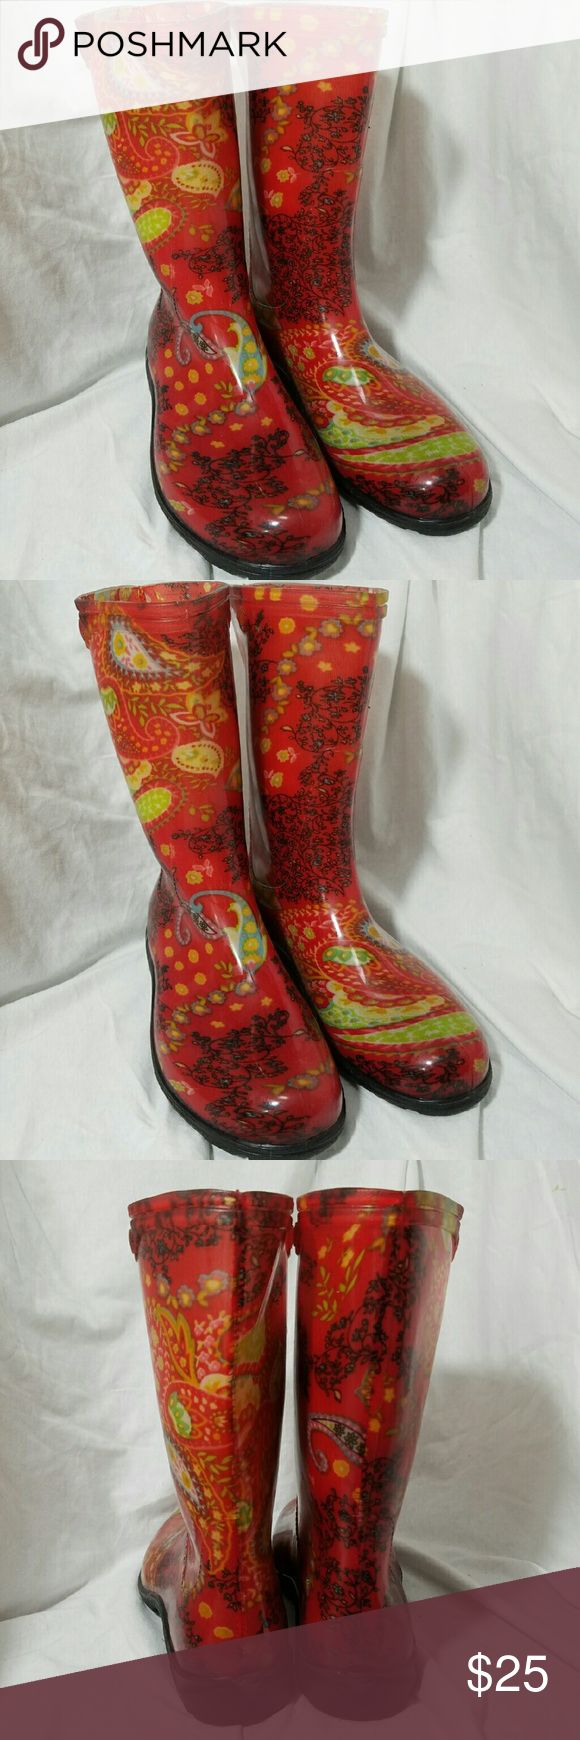 "SLOGGERS Sz 7 Red Paisley Rubber Rain Boots Brand: Sloggers  Item: *Womens Size 7 Red with a Floral Paisley Design Rain Boots *The Pattern Is Actual Fabric Covered in Rubber or Flexible Plastic *Waterproof *They are 10"" High *Excellent Pre-Loved Condition Showing only Very Minimal Wear on the Soles   *no trades, offers via offer button only* Sloggers Shoes Winter & Rain Boots"